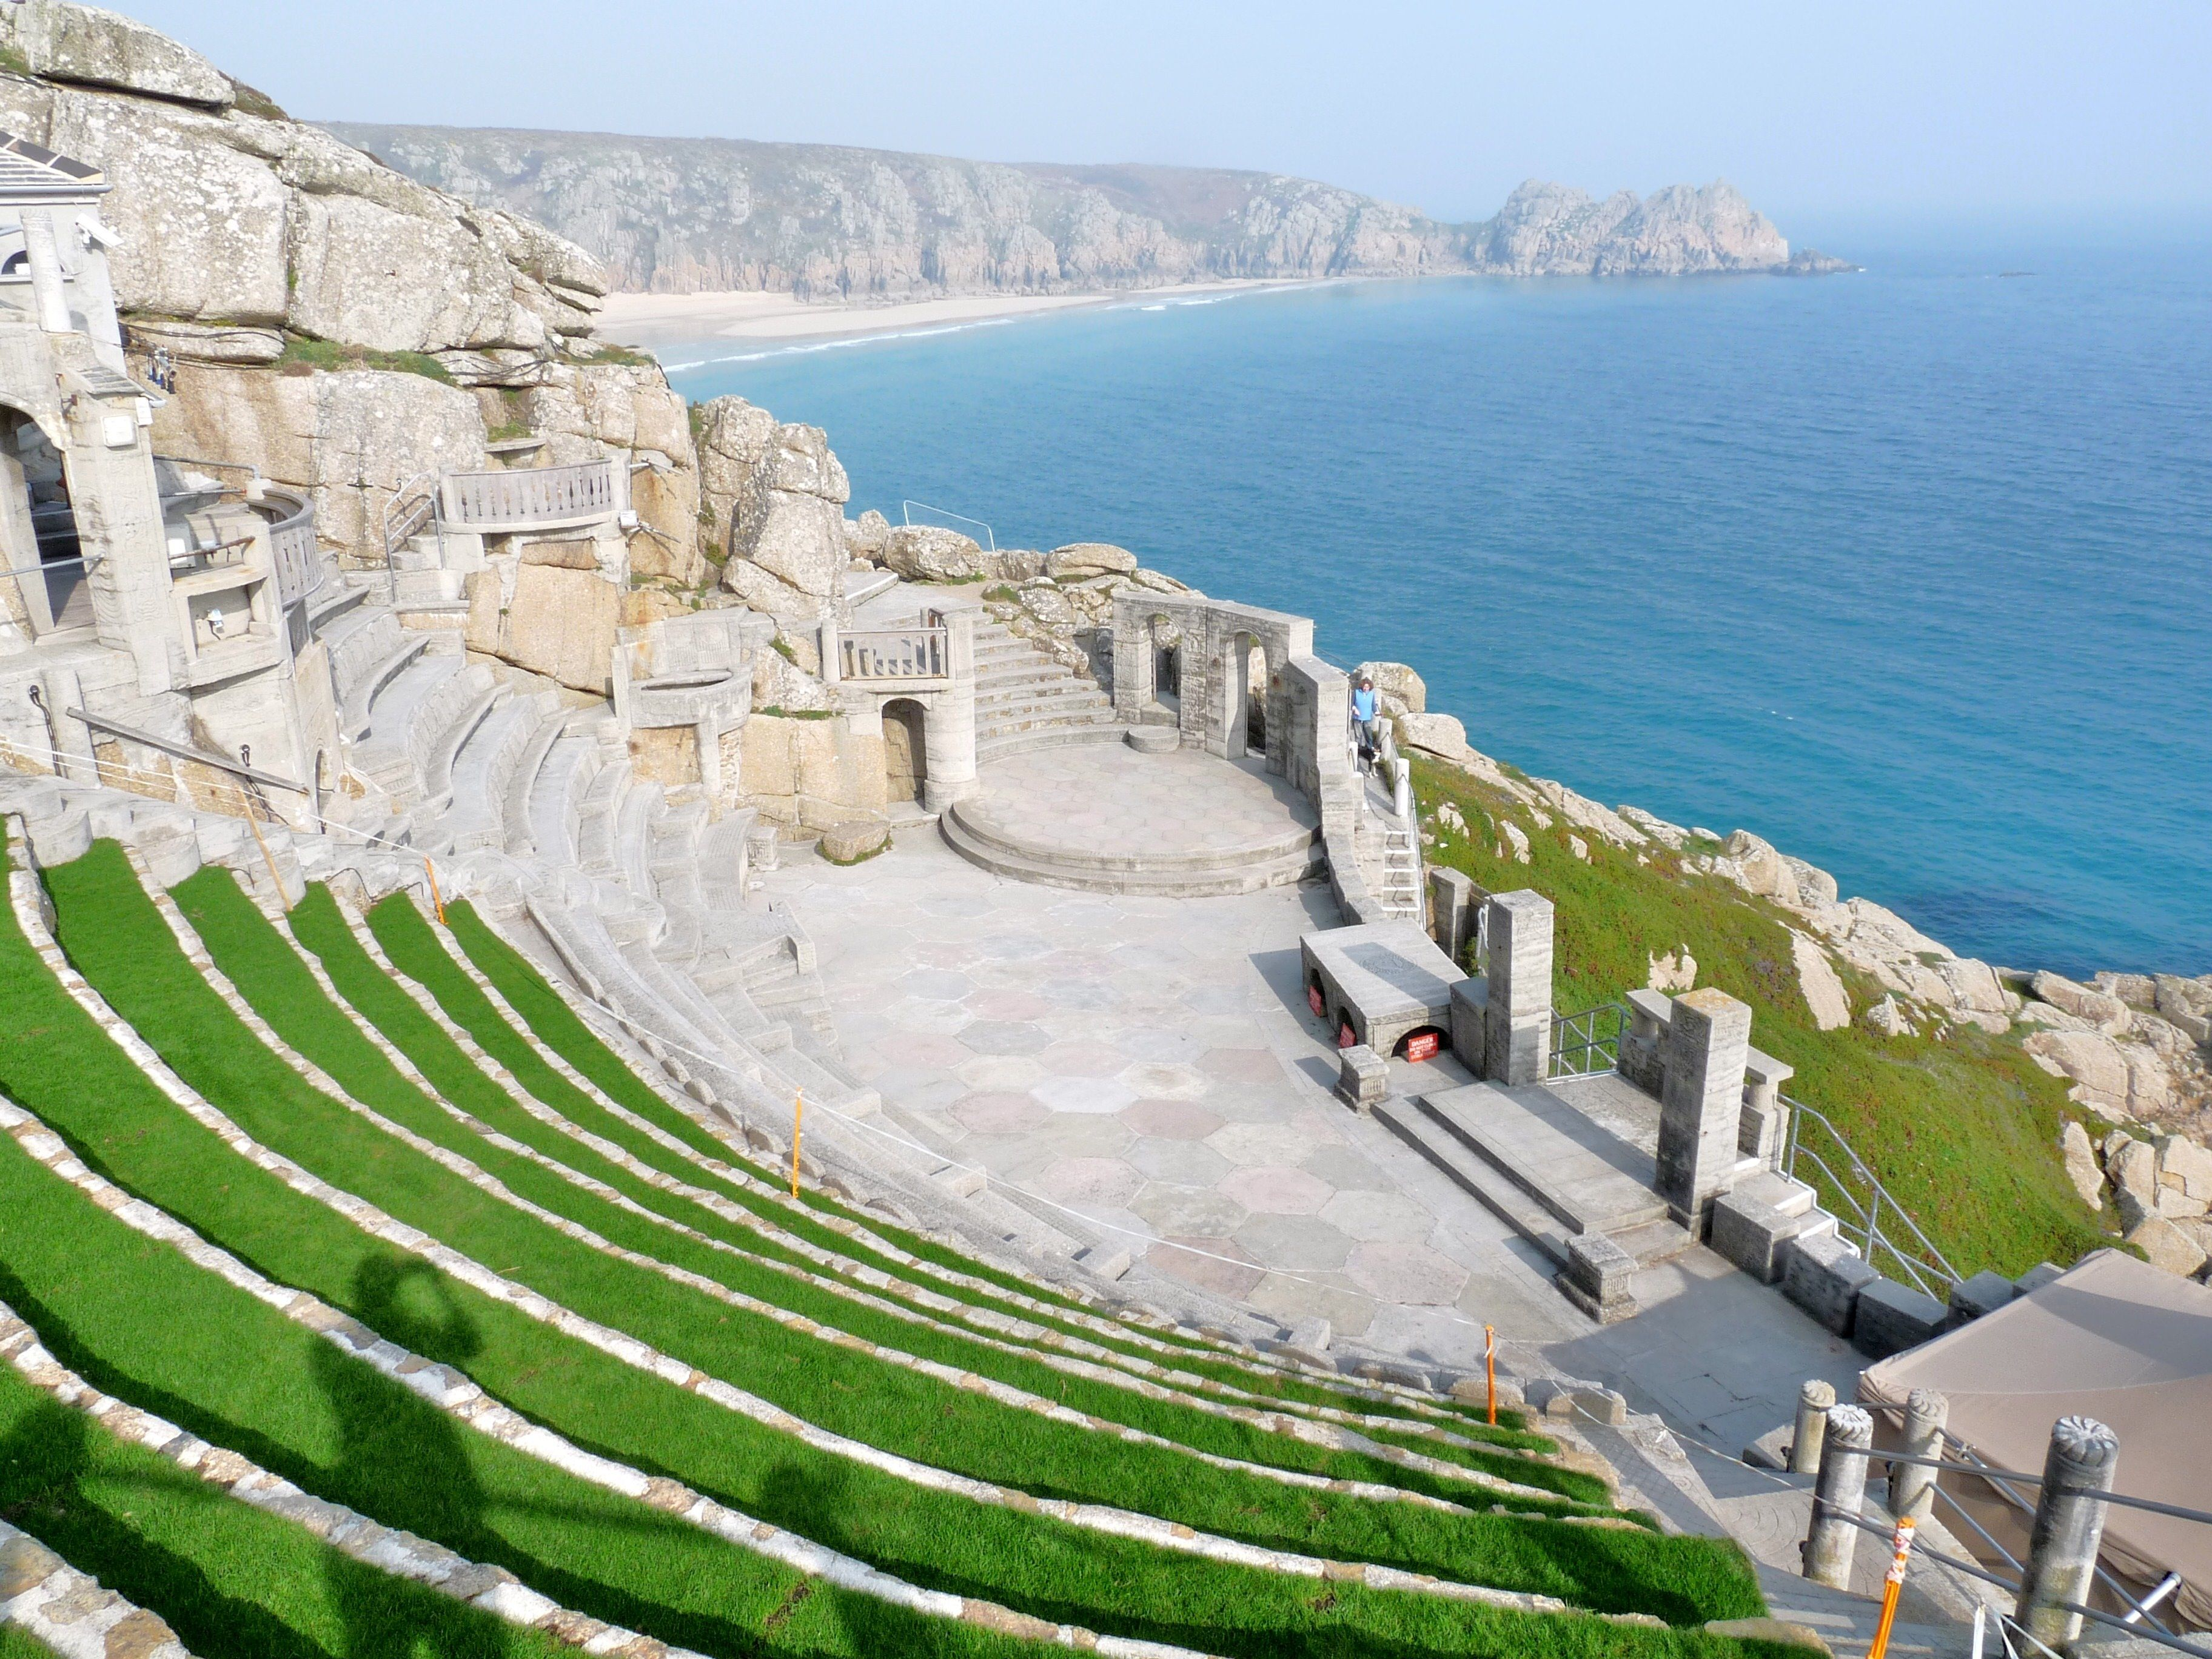 The World Famous Minack Outdoor Theatre in Porthcurno. It